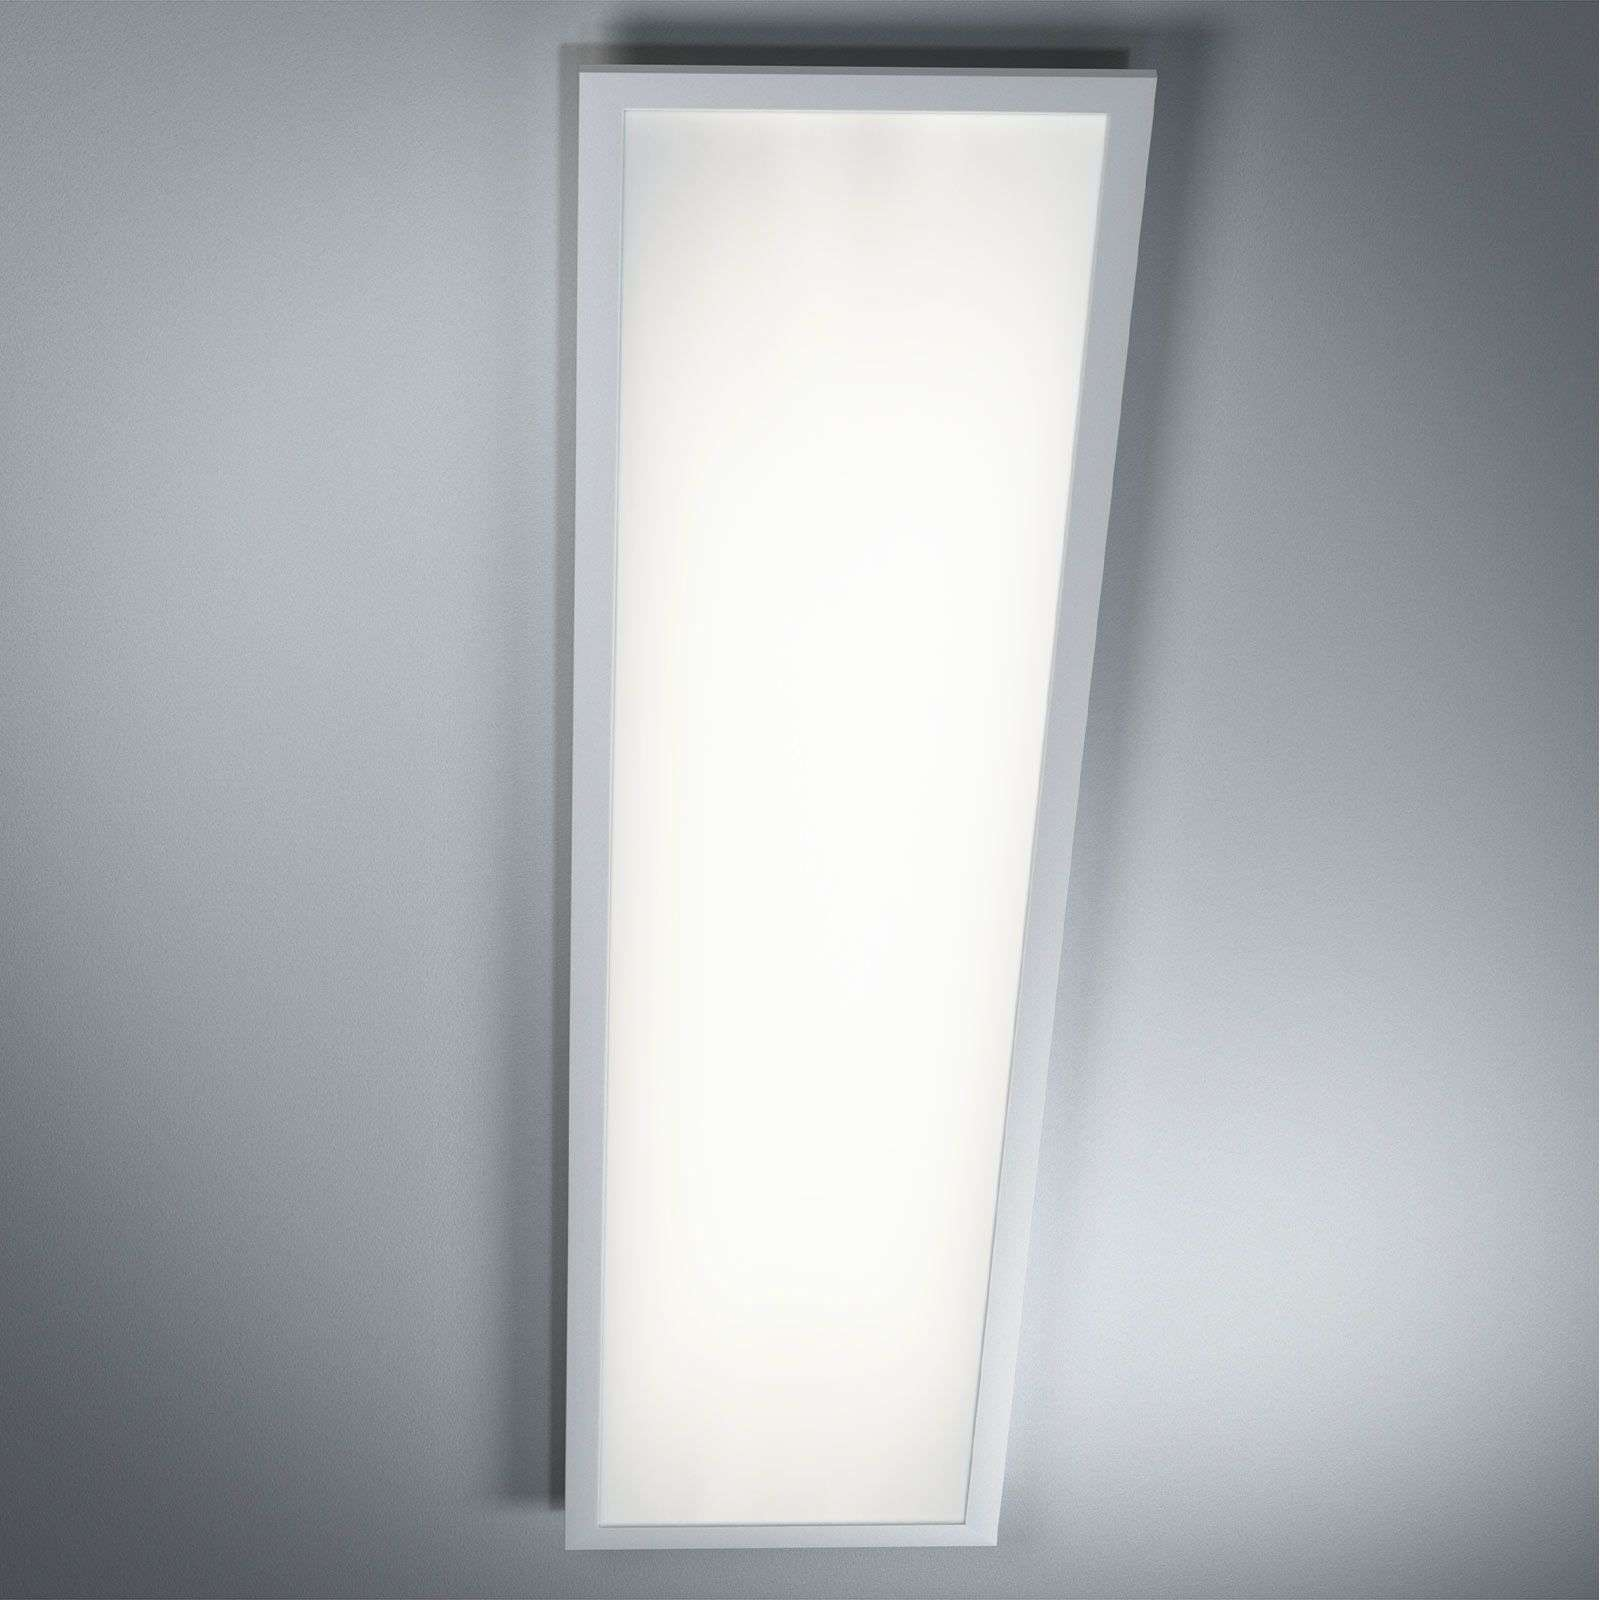 LEDVANCE Planon Plus panel LED 120x30 cm 840 36W